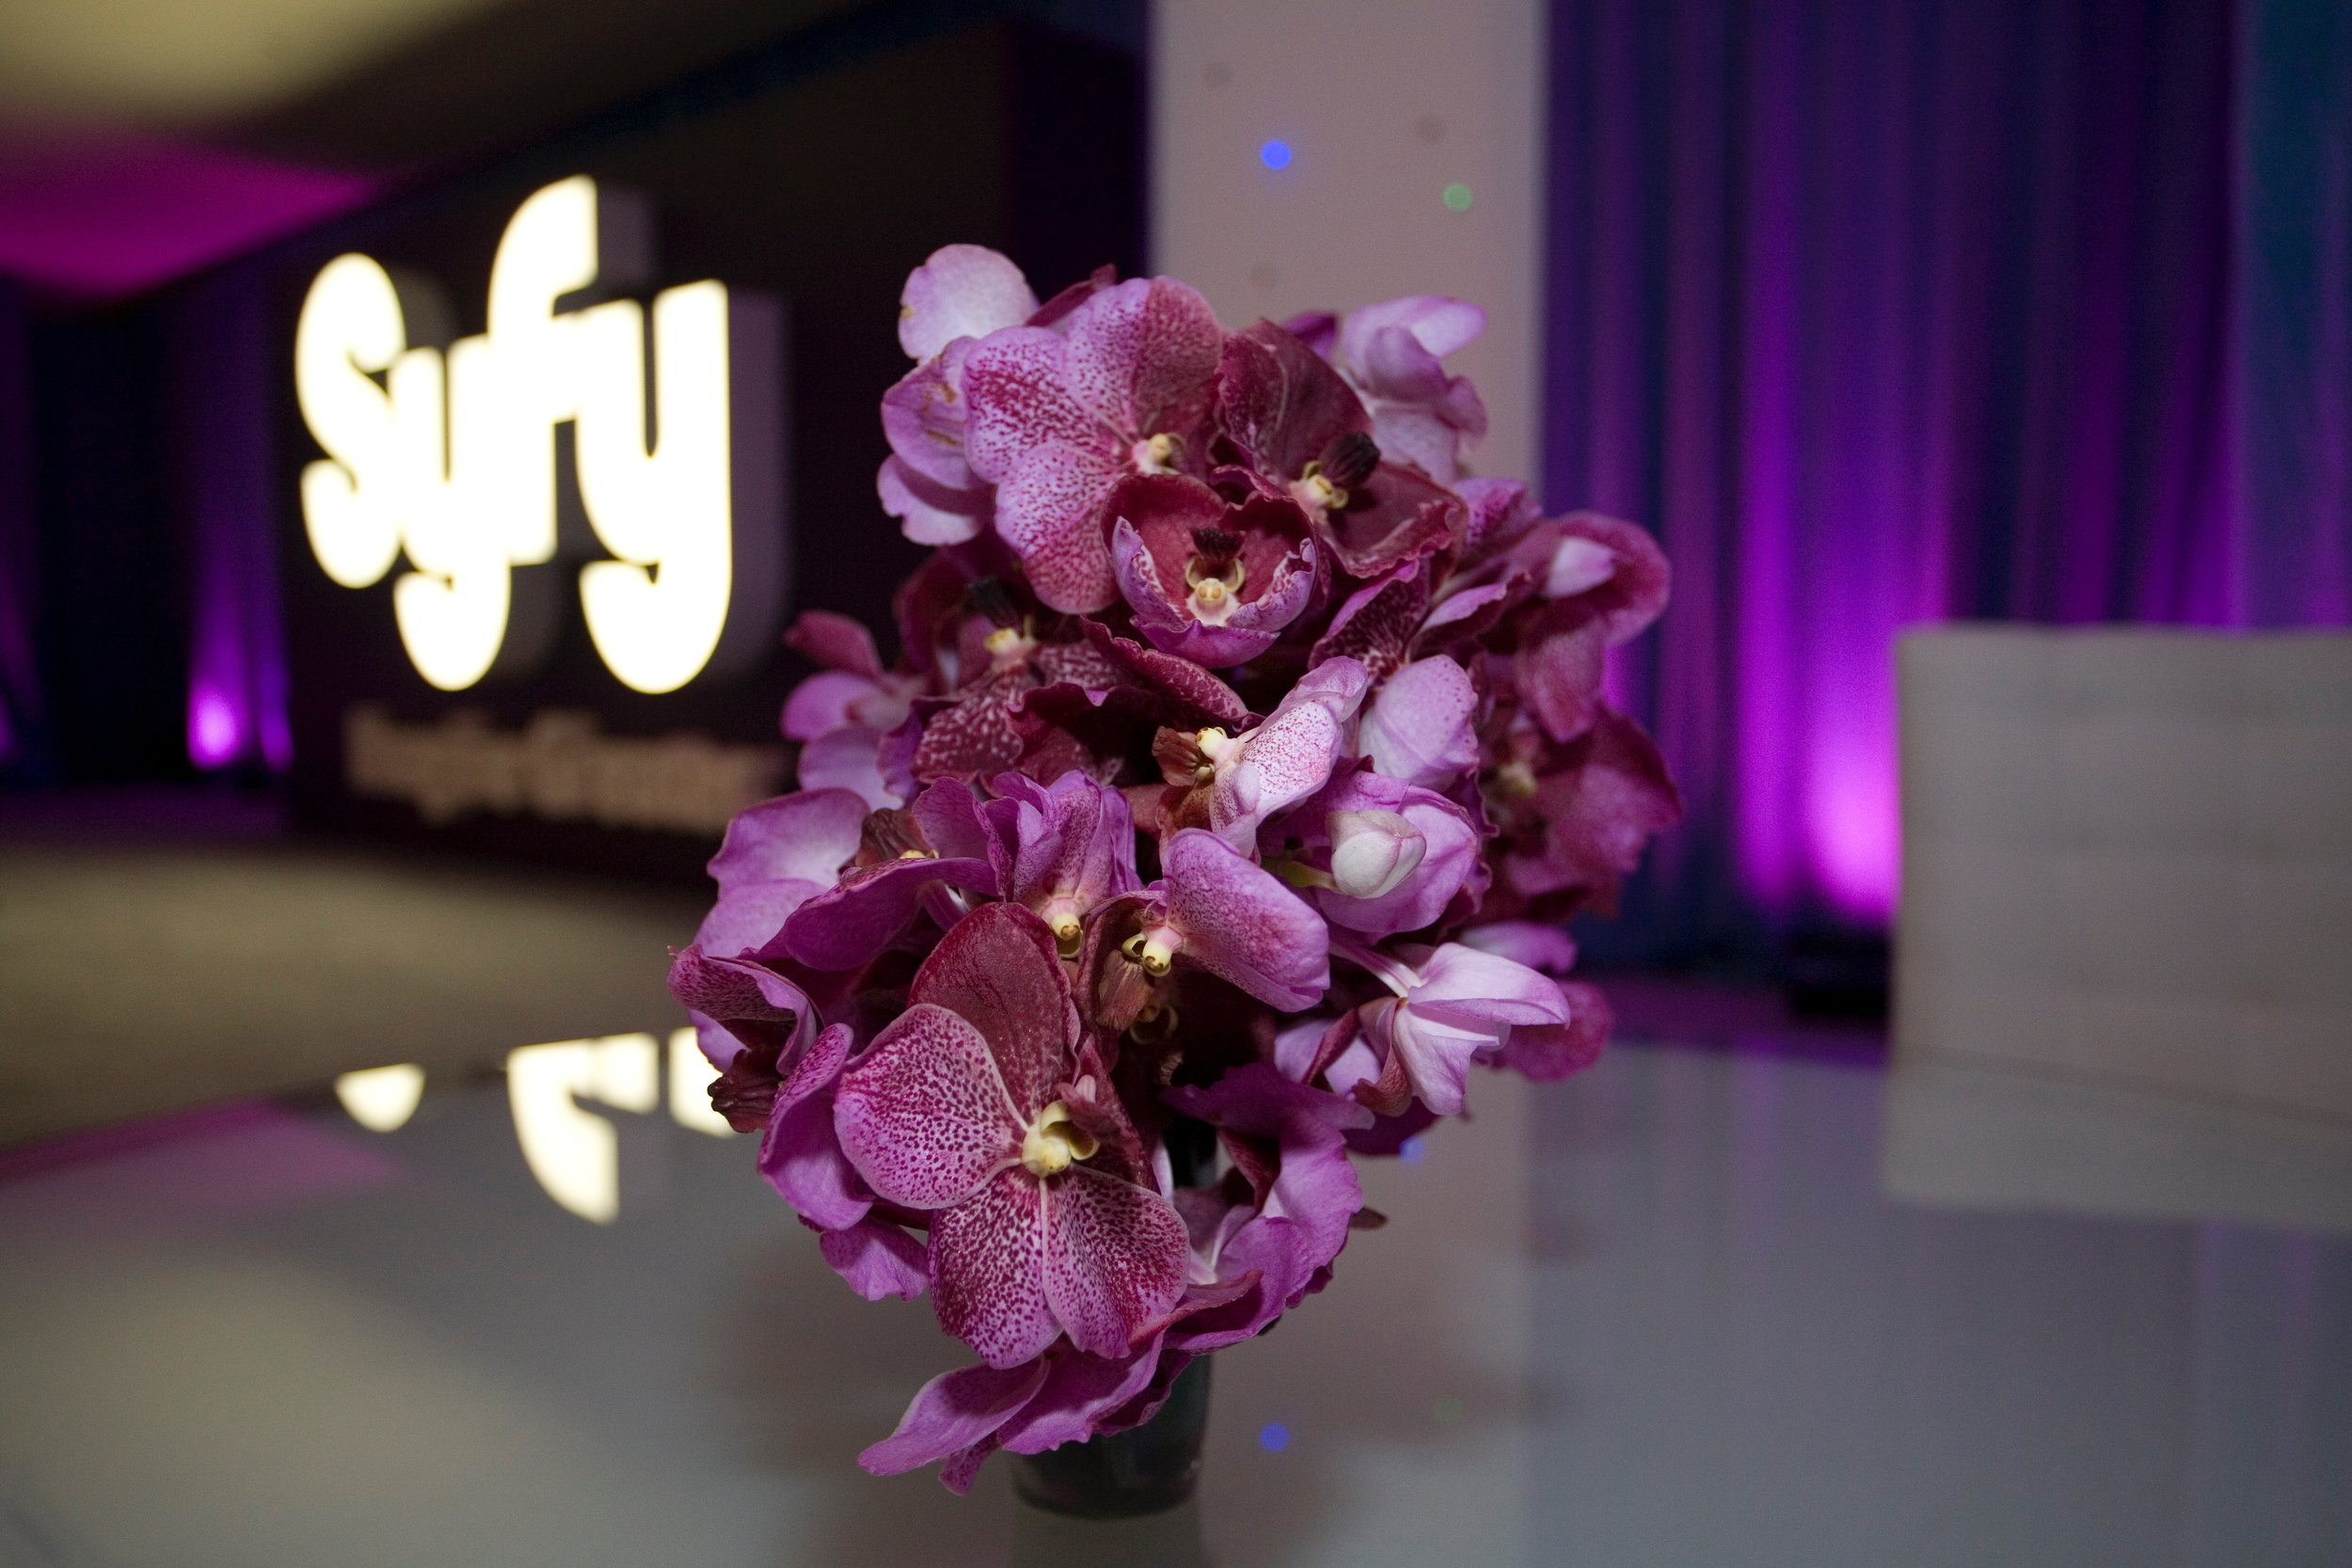 Syfy Upfront at NY Times Building